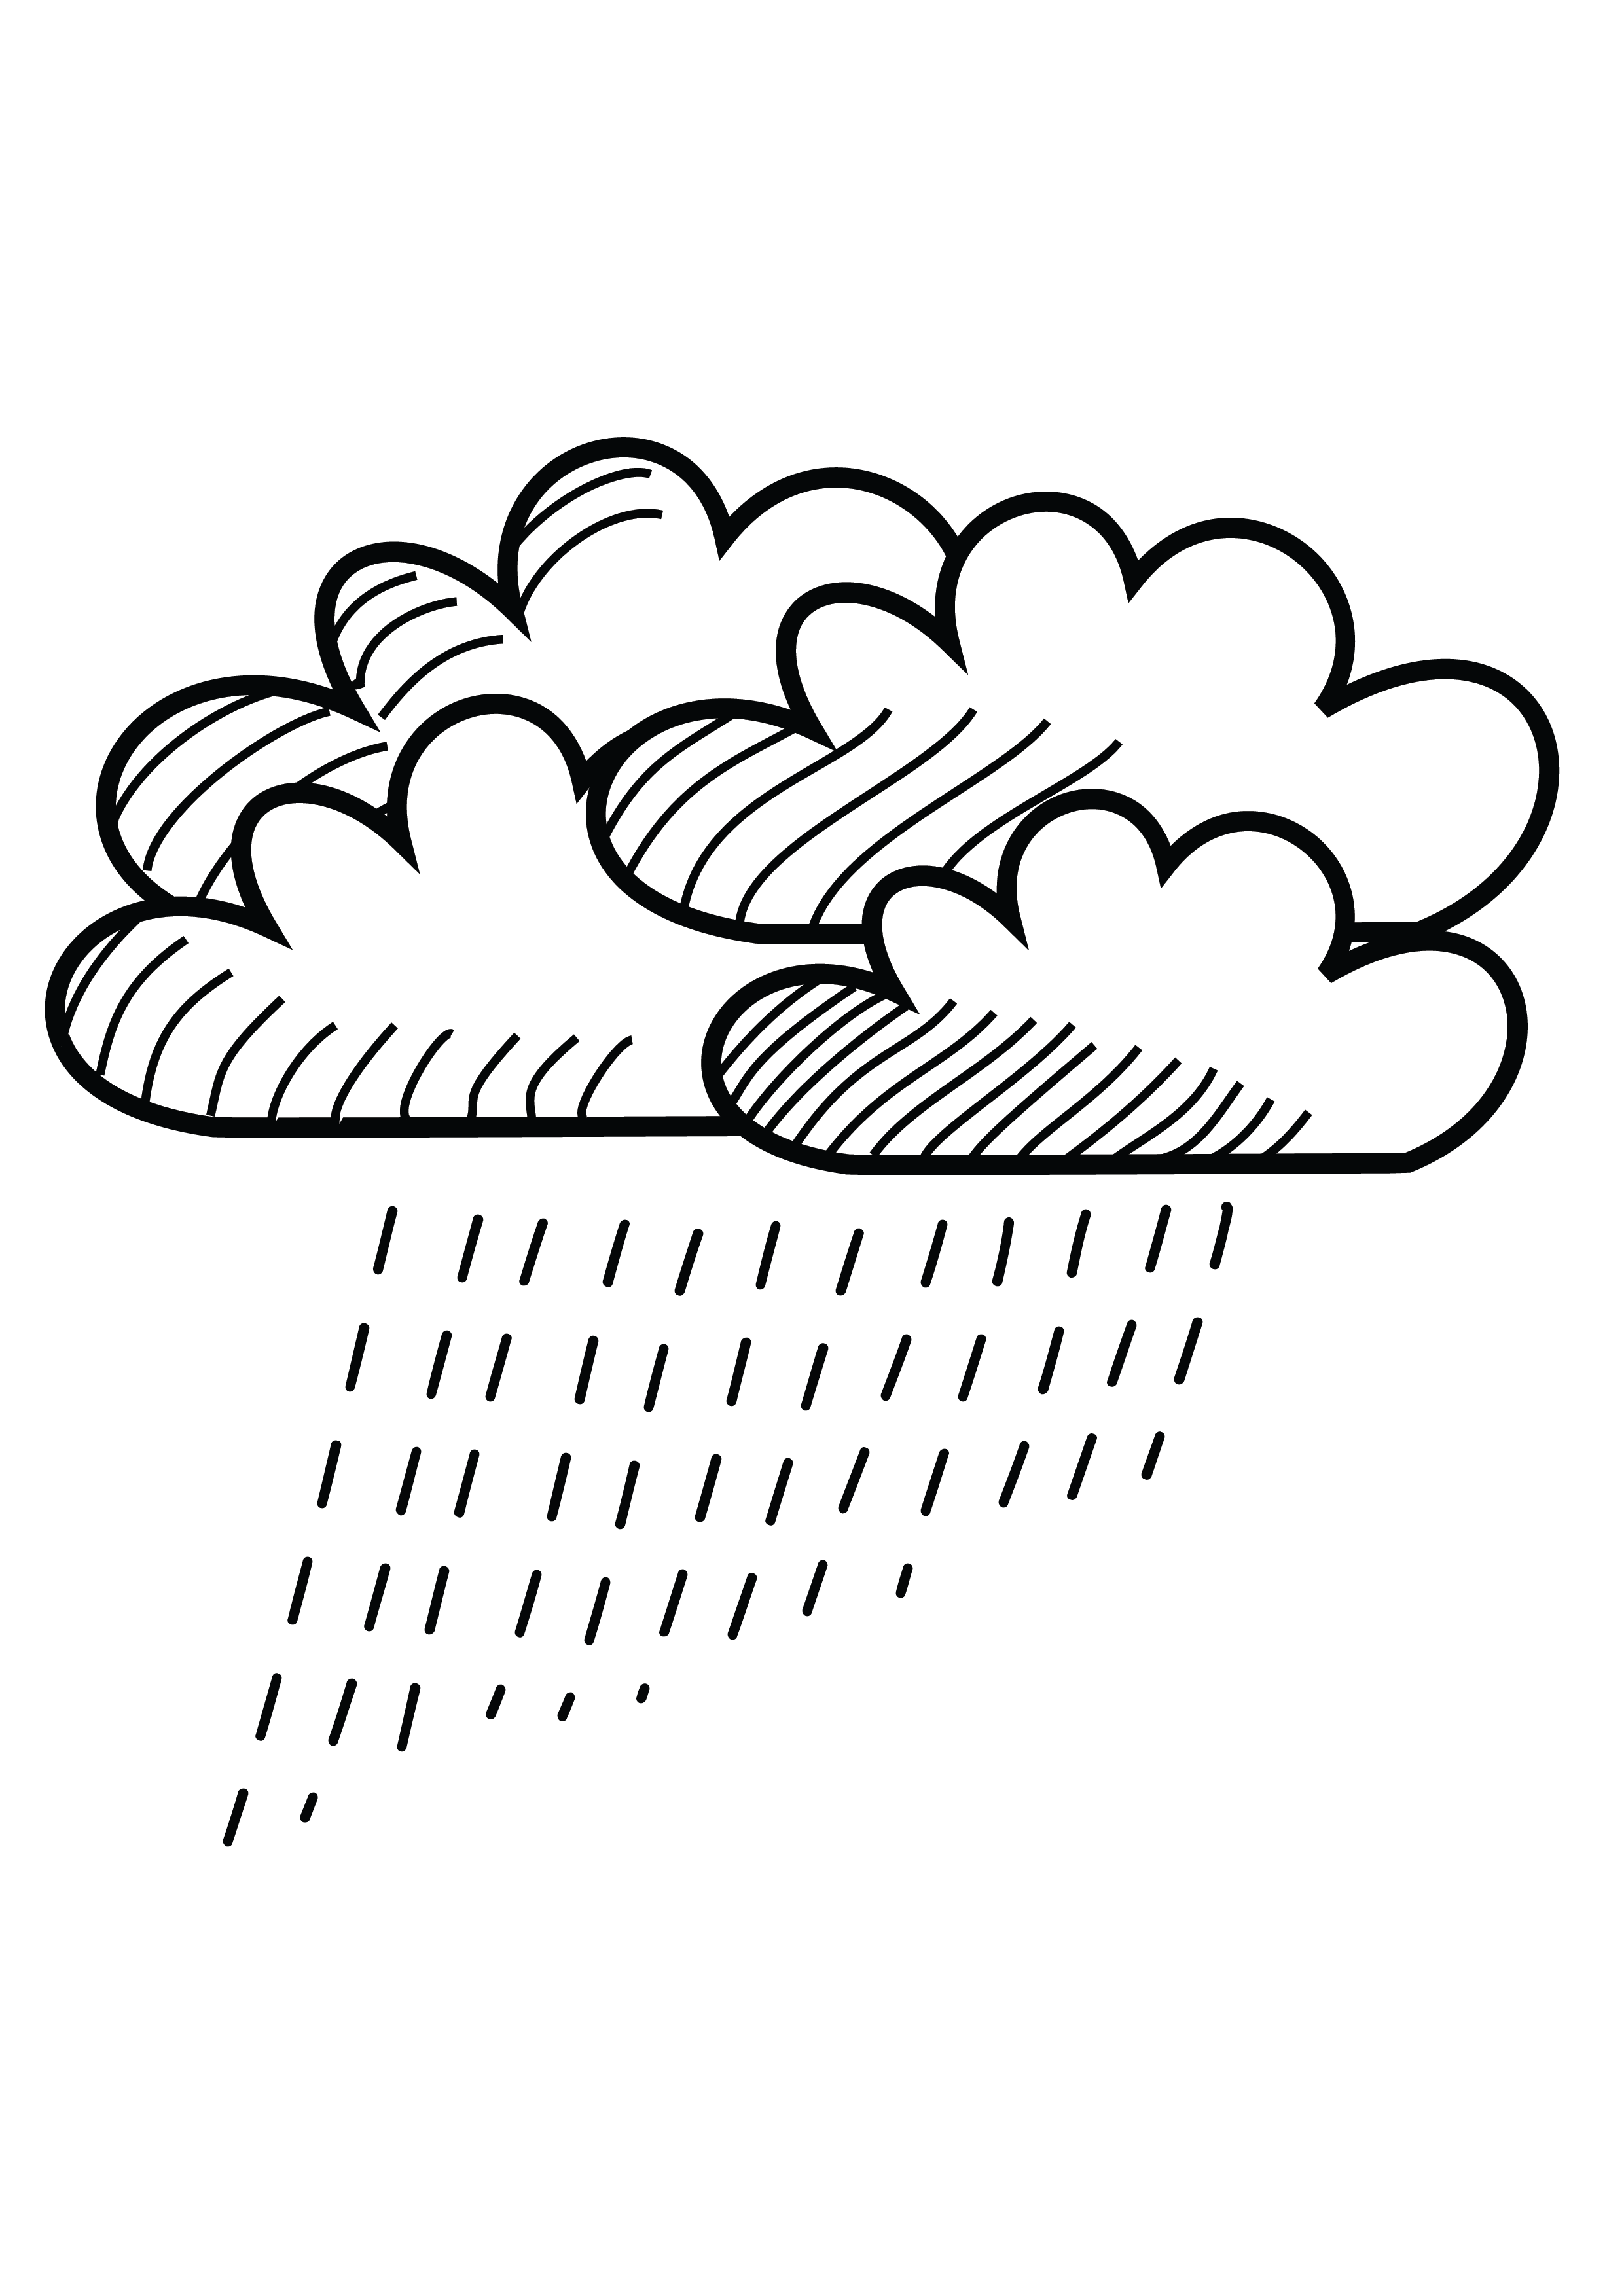 Rainy CLOUD Clipart Coloring Pages for Kids Adults Art Activities Line Art-